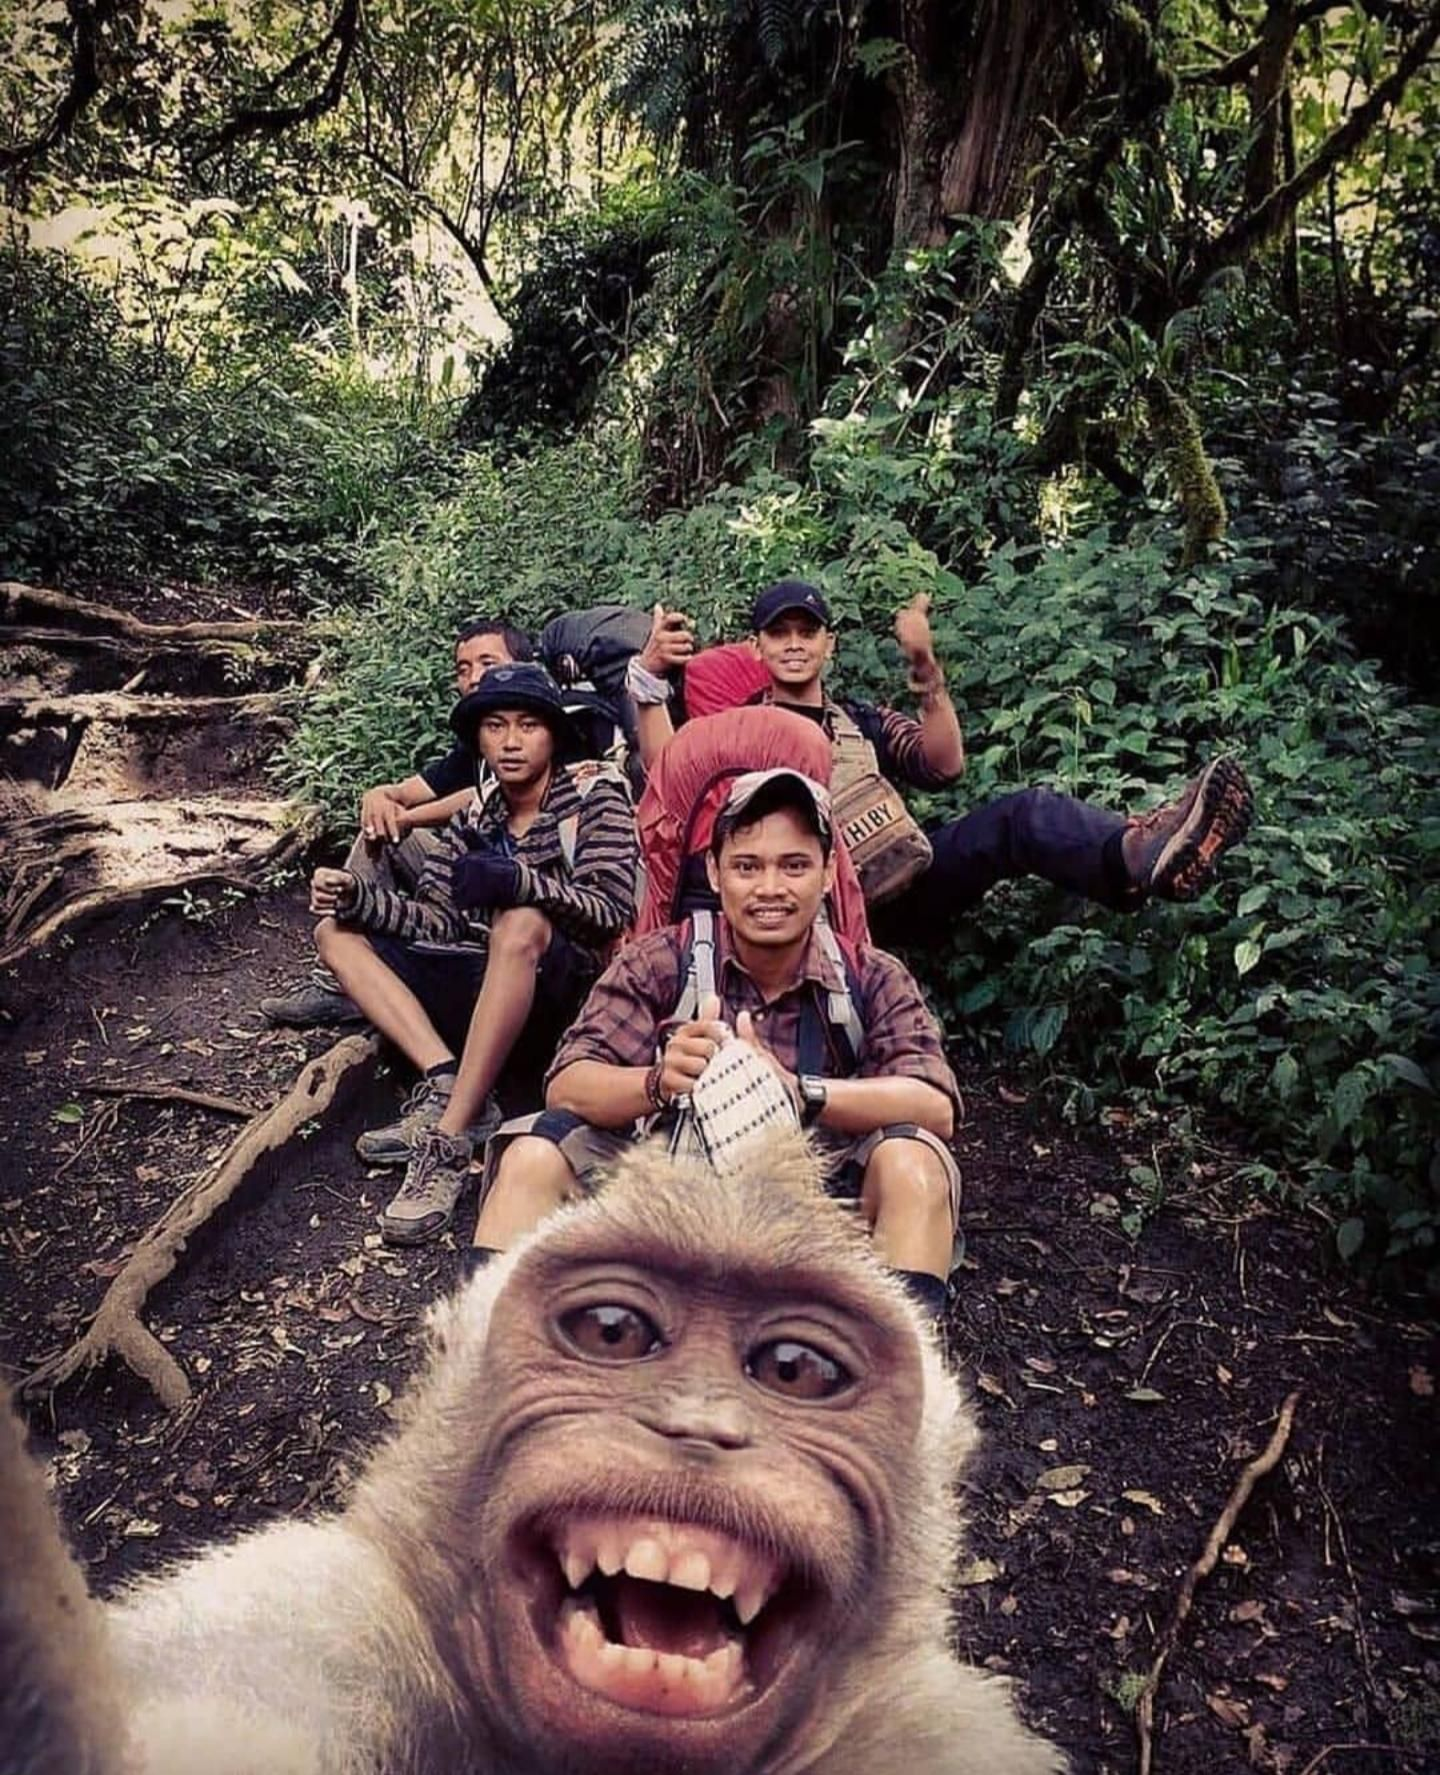 They are evolving. Monkey selfie